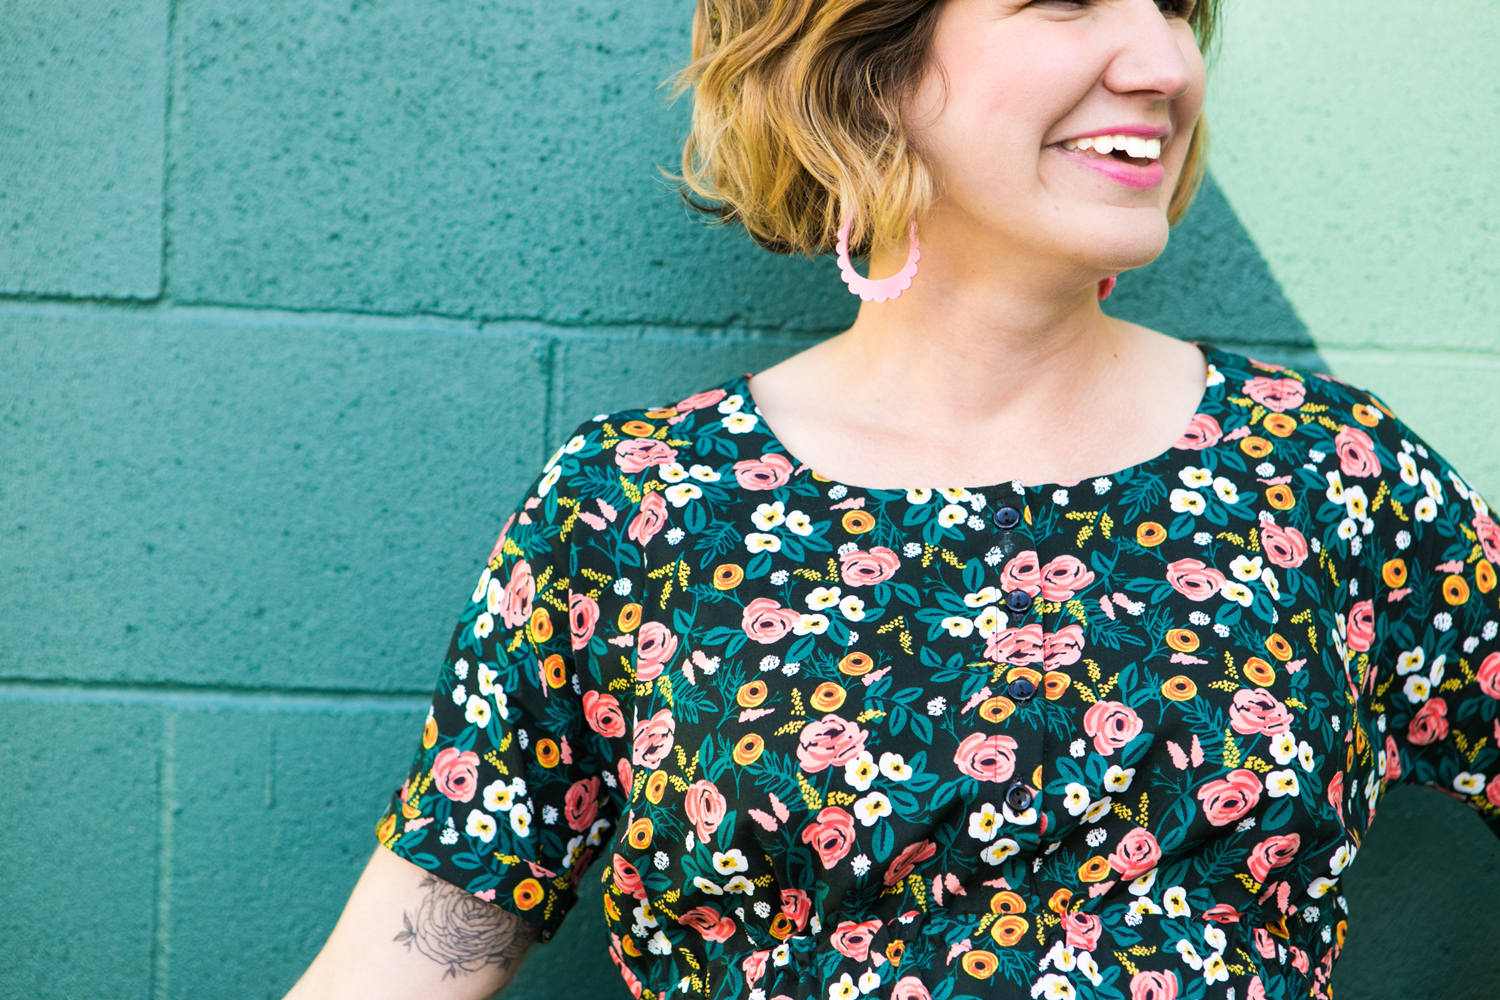 Detail shot of sleeve of floral dress